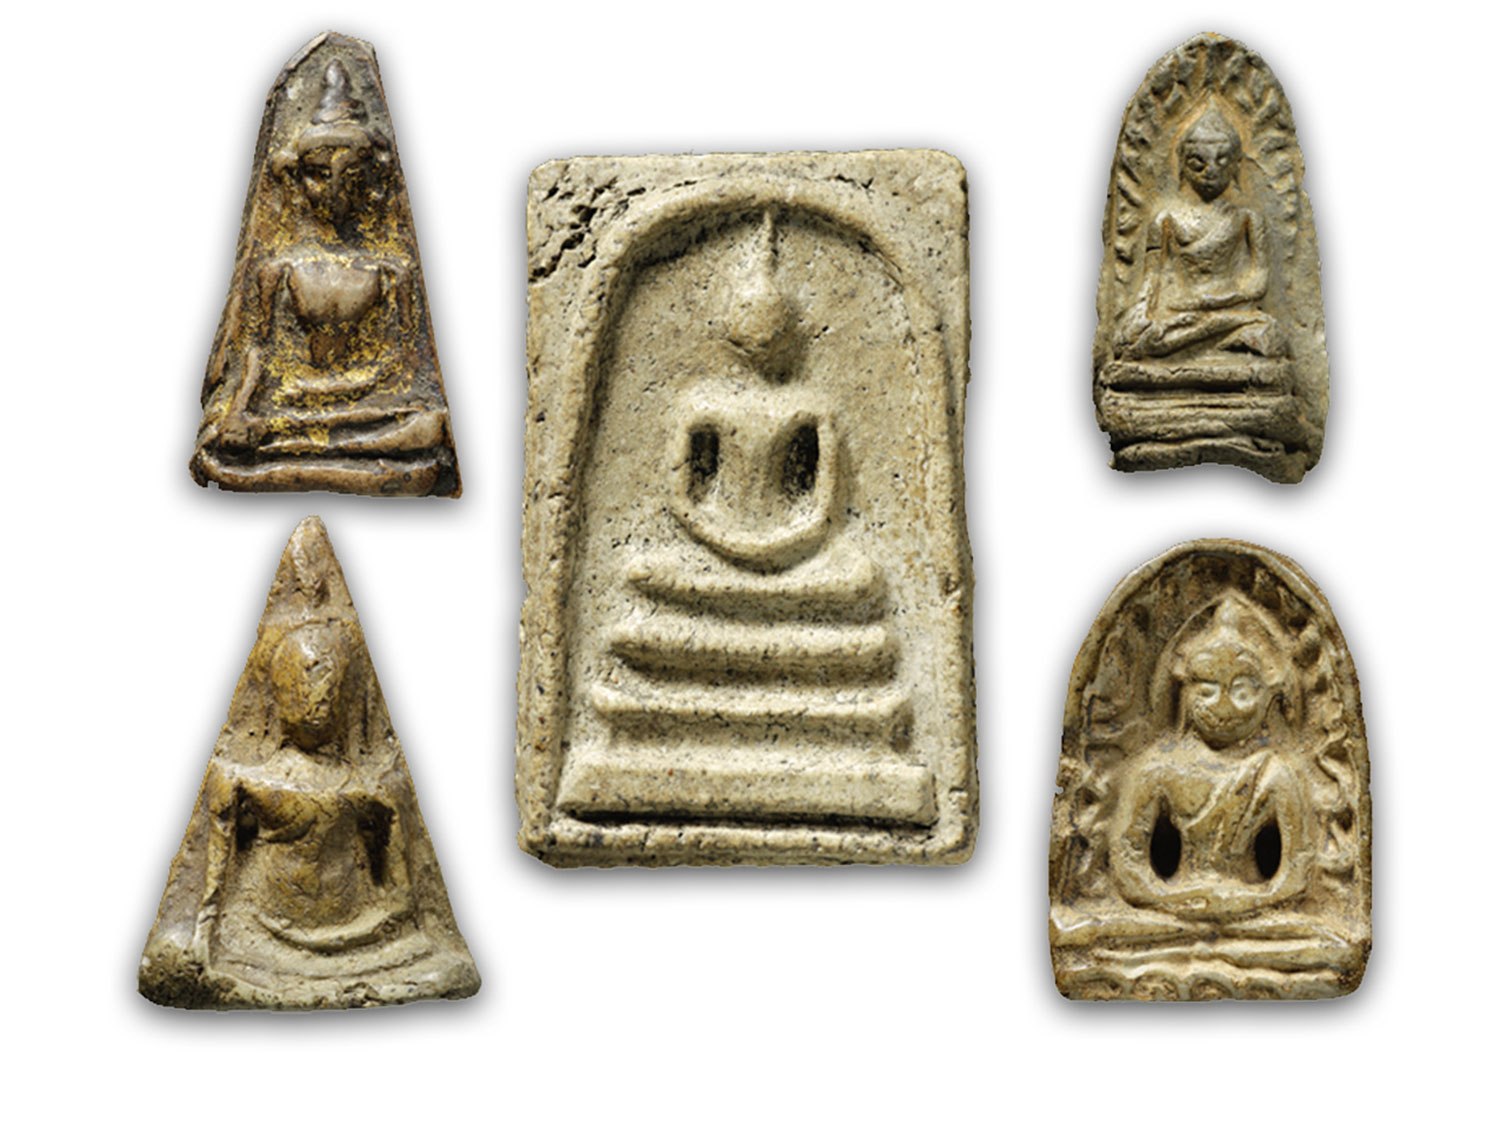 Benjapakee Amulets of the Top Five Regions